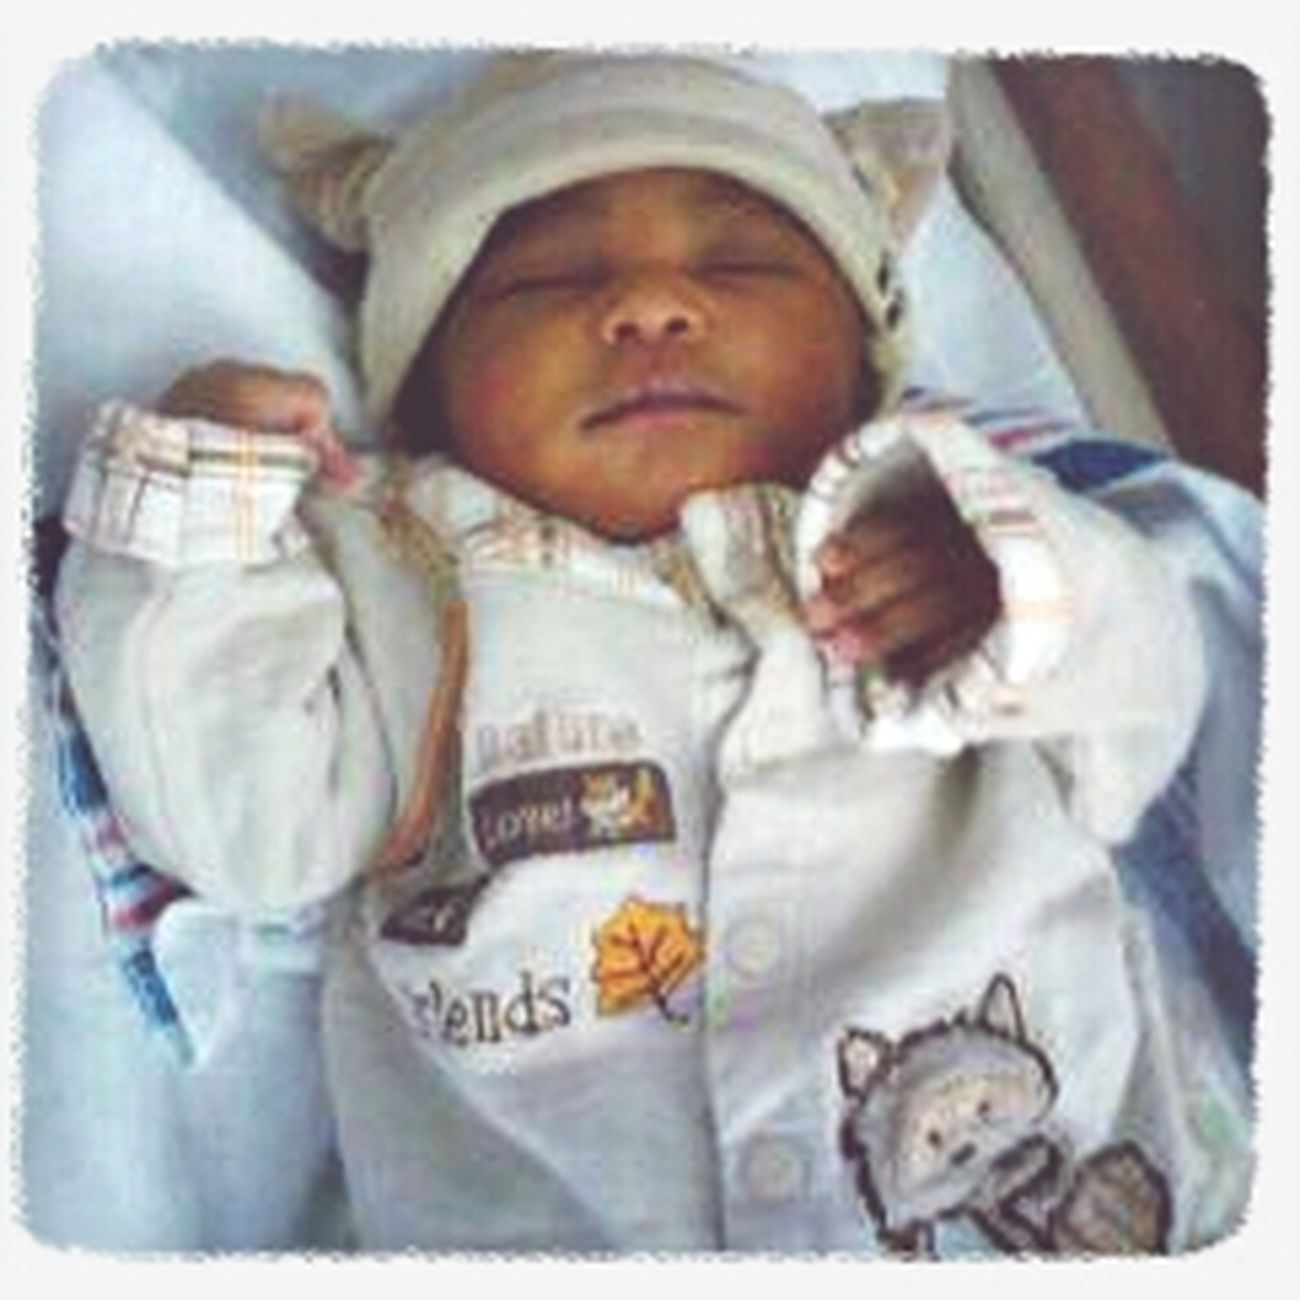 When we first bought my baby brother home